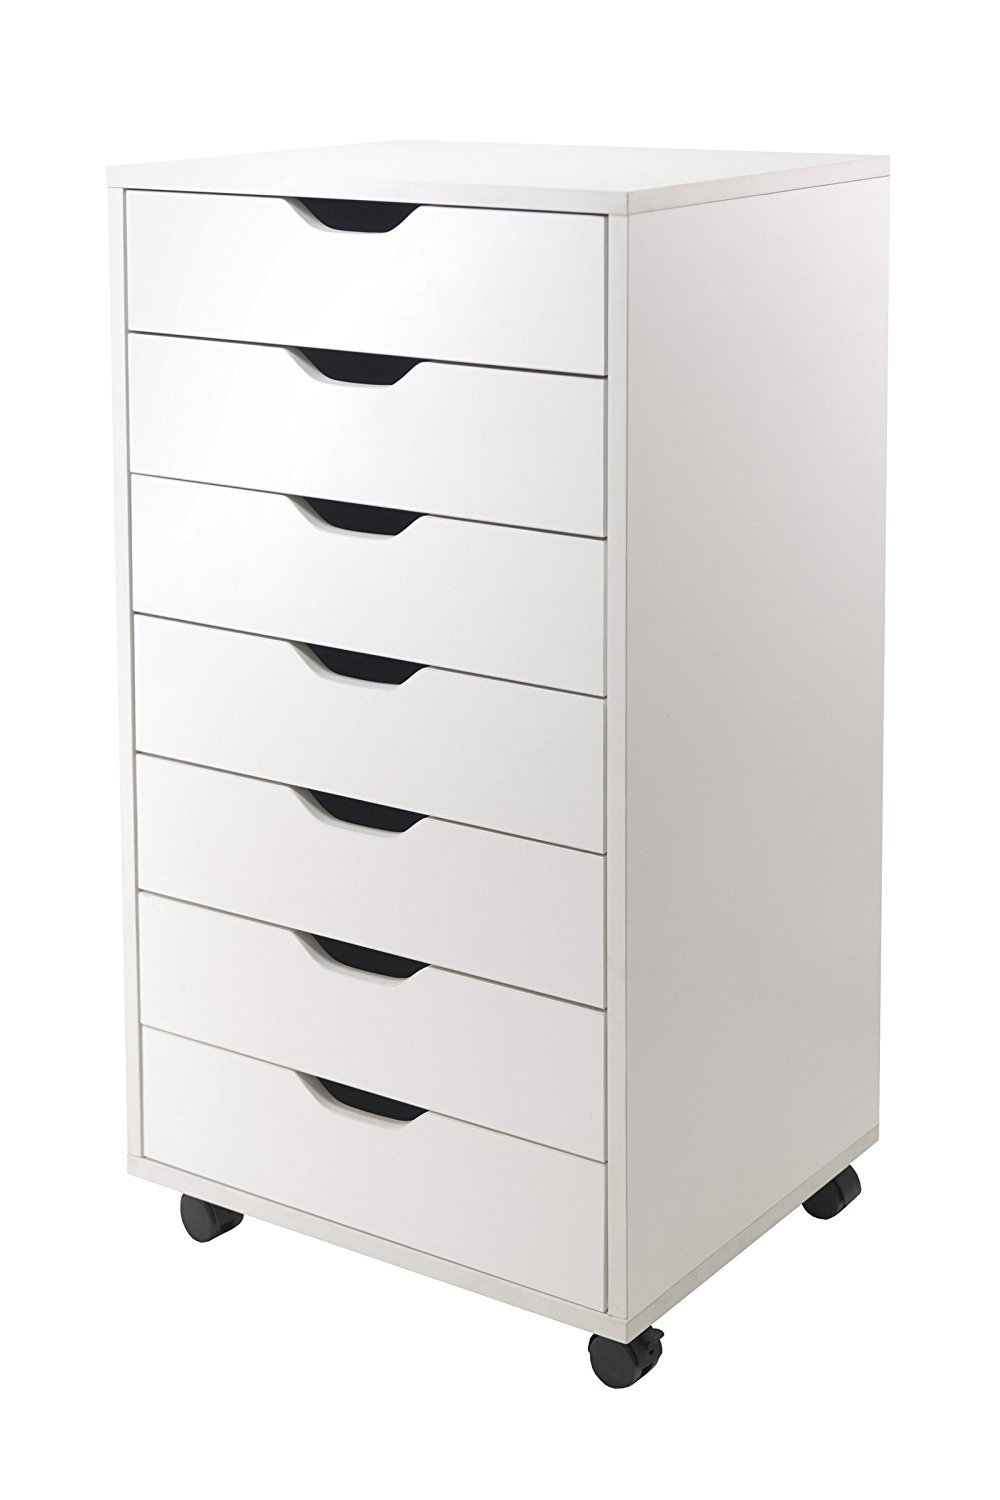 Winsome Halifax Cabinet For Closet/Office, 7 Drawers, White   Walmart.com